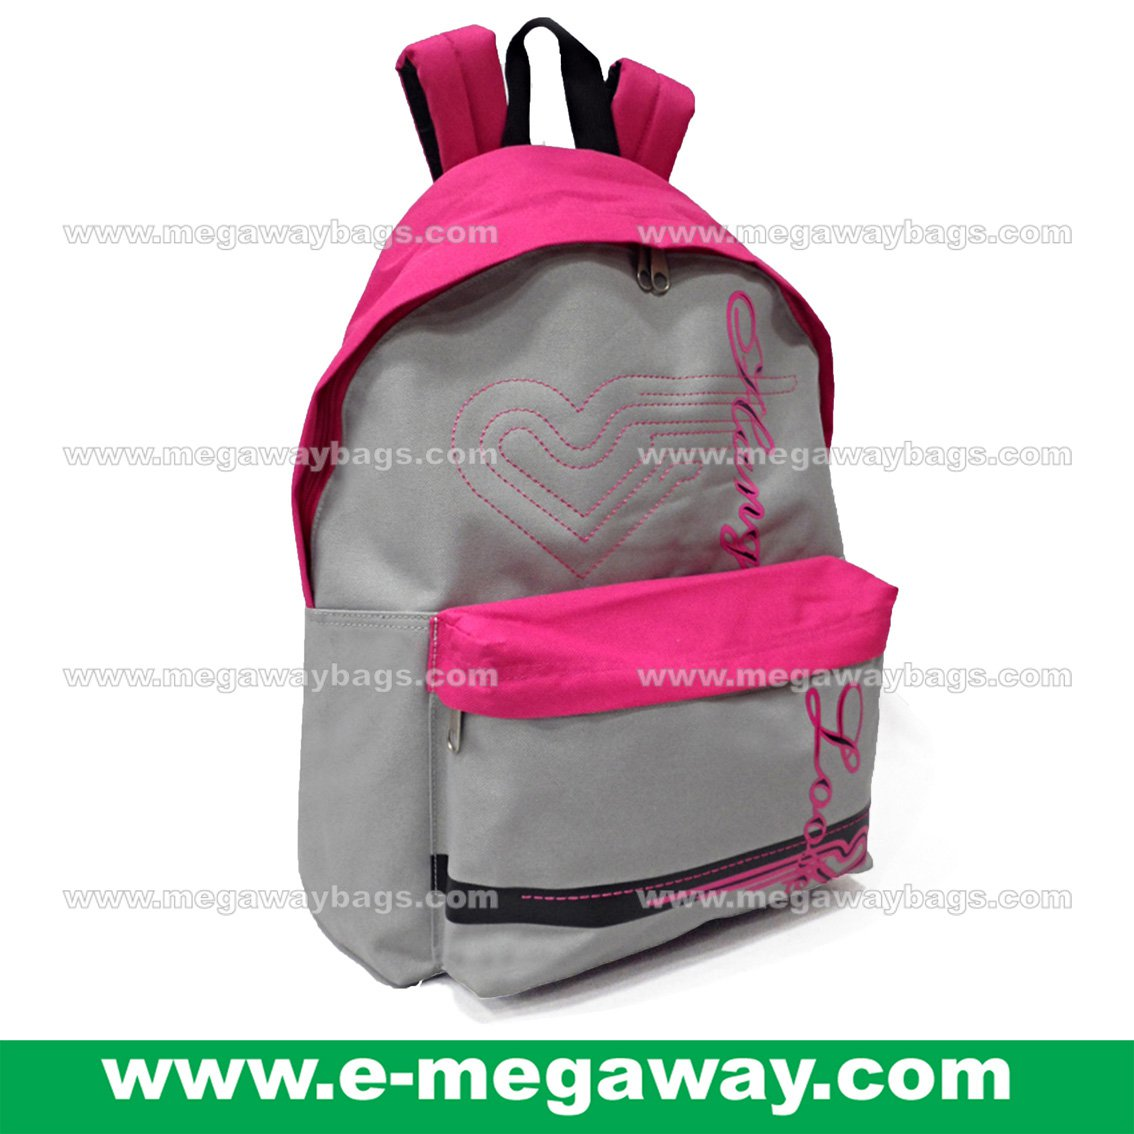 Hang Loose Backpack Nylon Backpack Rucksack Day Pack Sports Outdoor MegawayBags #CC- 0984